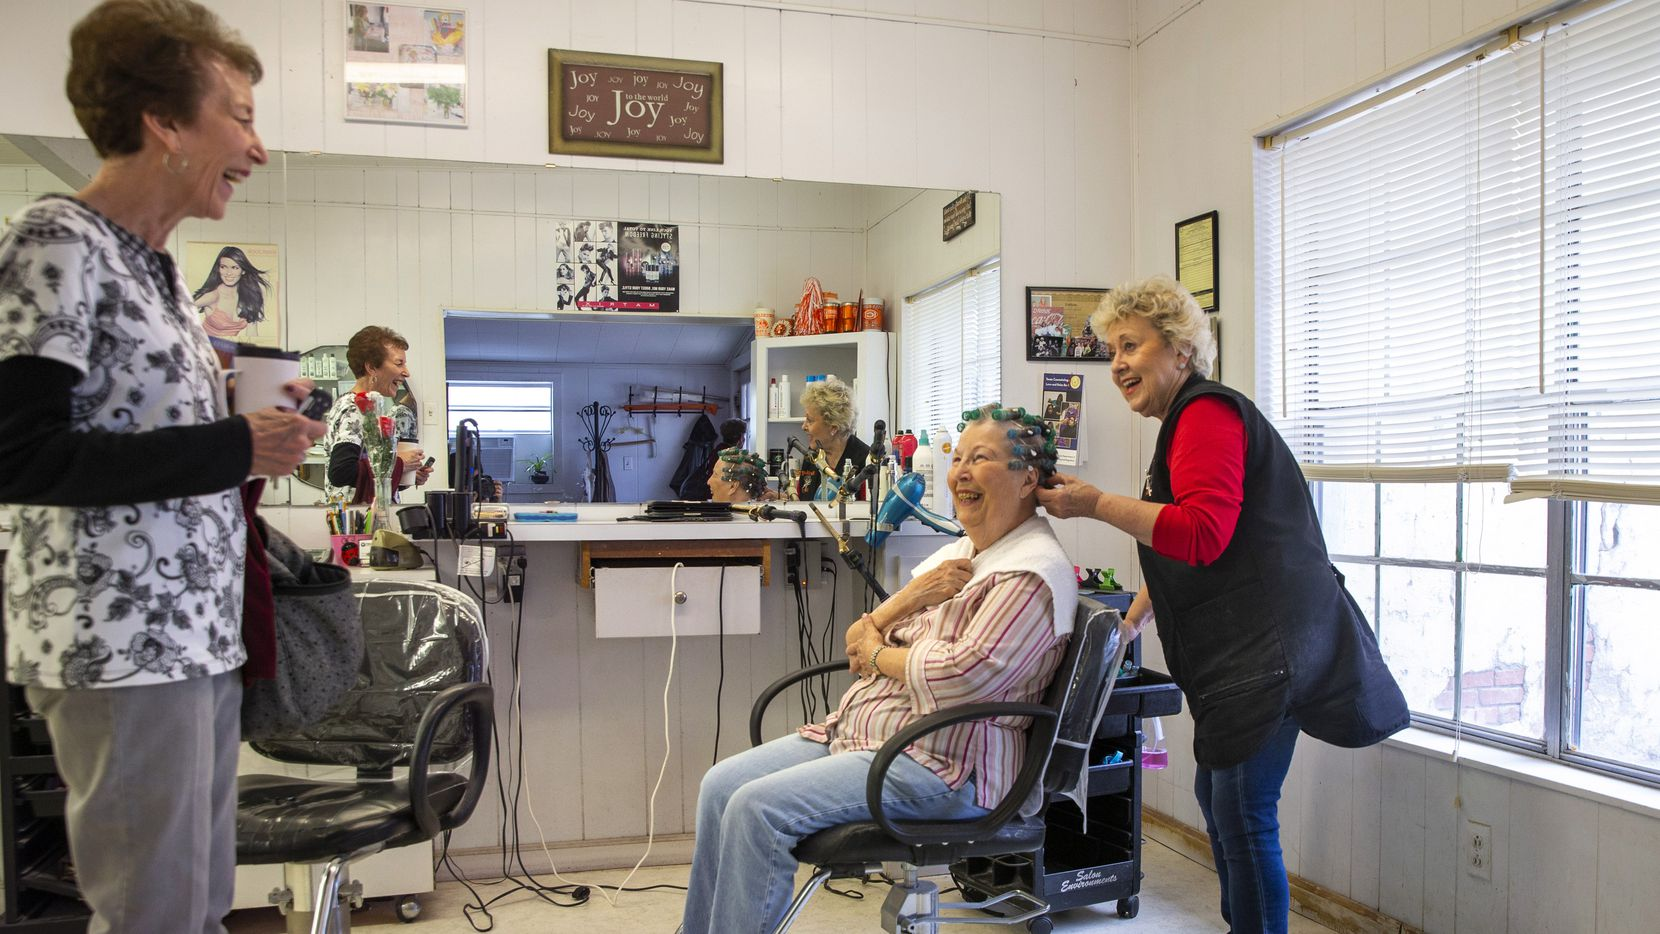 Mary Ann Ashby (left) says goodbye to Gayle Shackleford (center) and Shirley O'Neal as she leaves Shirley's Hair Shop in Celina on Nov. 21, 2019.